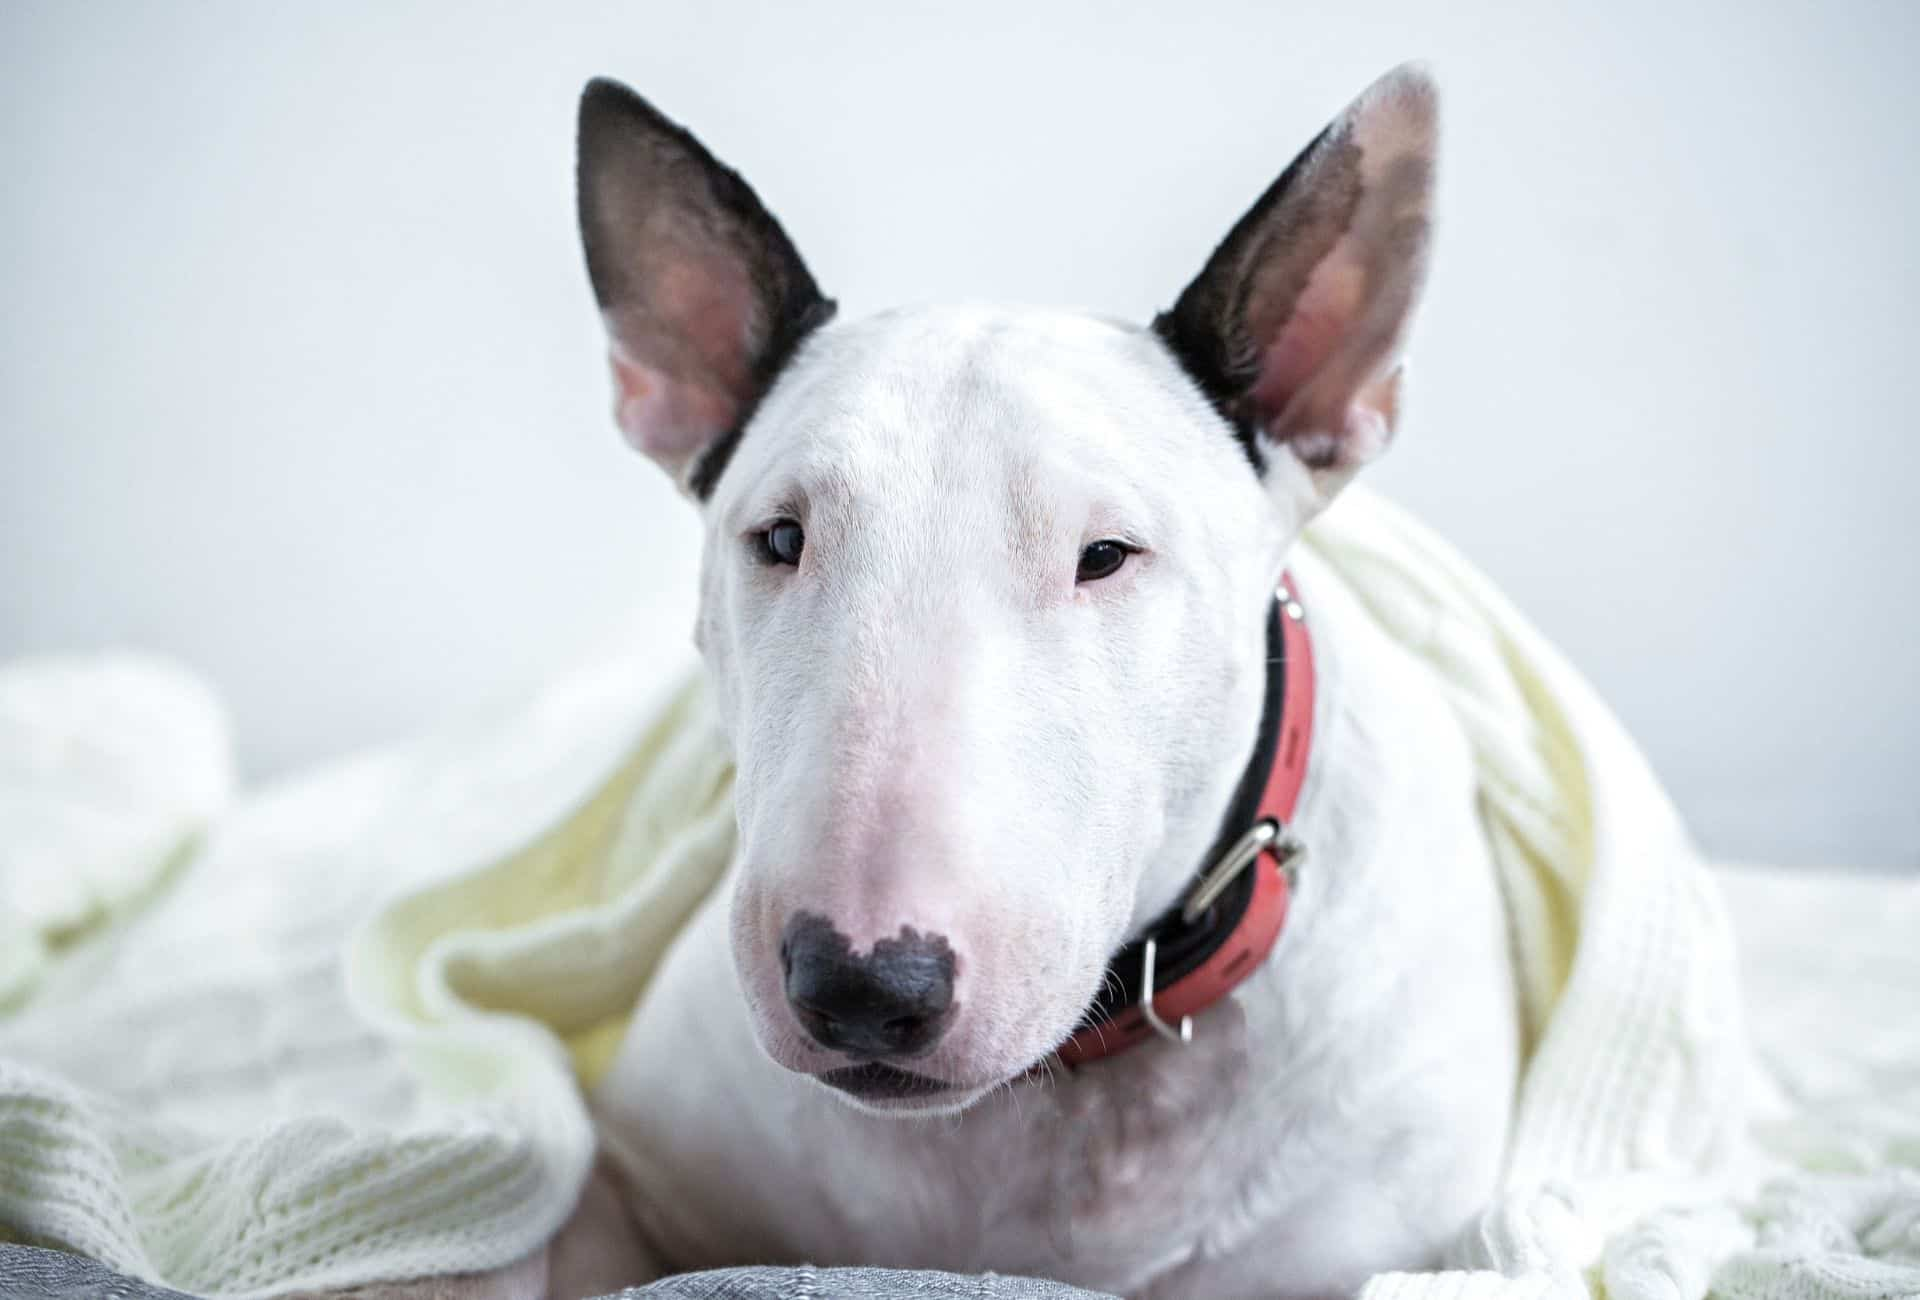 White Bullterrier under a white blanket in front of a plain white wall.